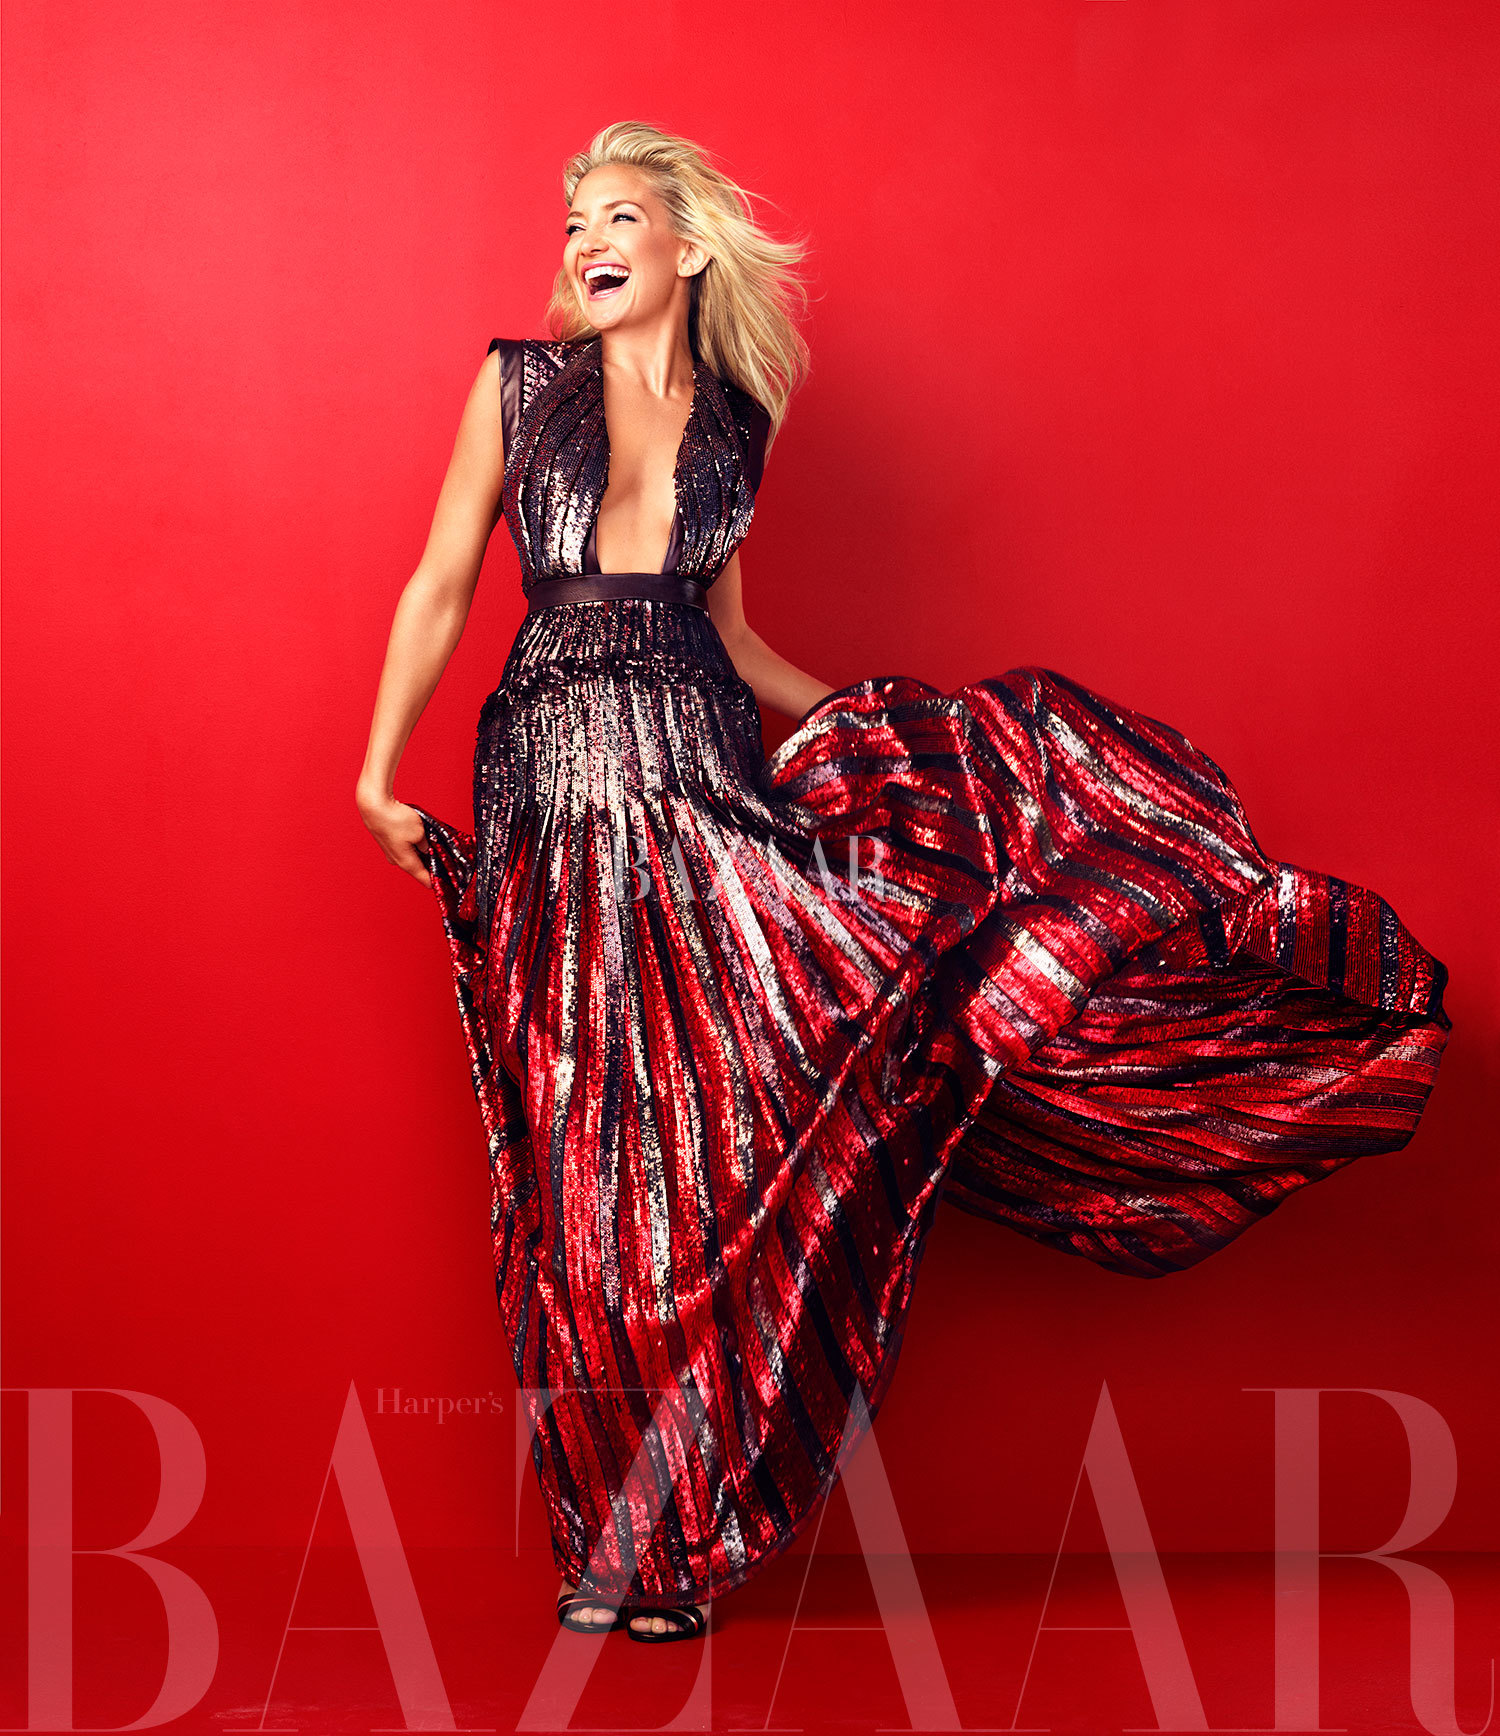 kate hudson red carpet harper's bazaar